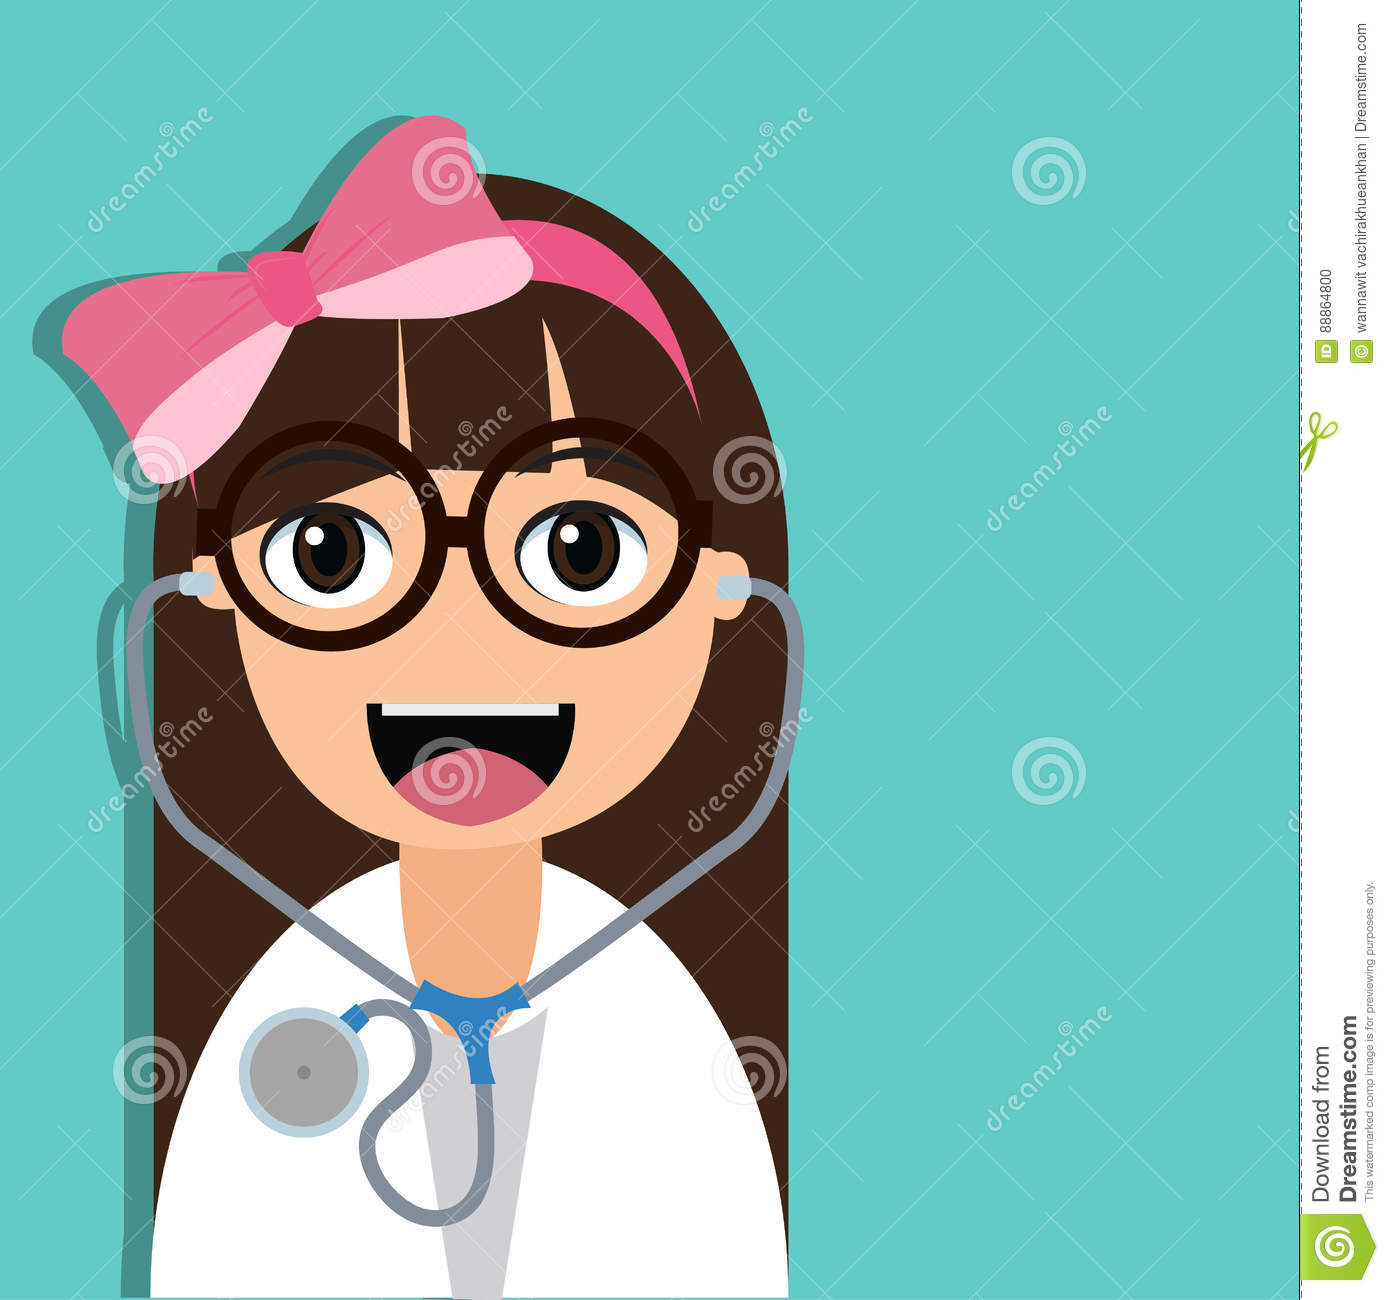 Cute Doctor Cartoon Character Stock Vector - Image: 88864800